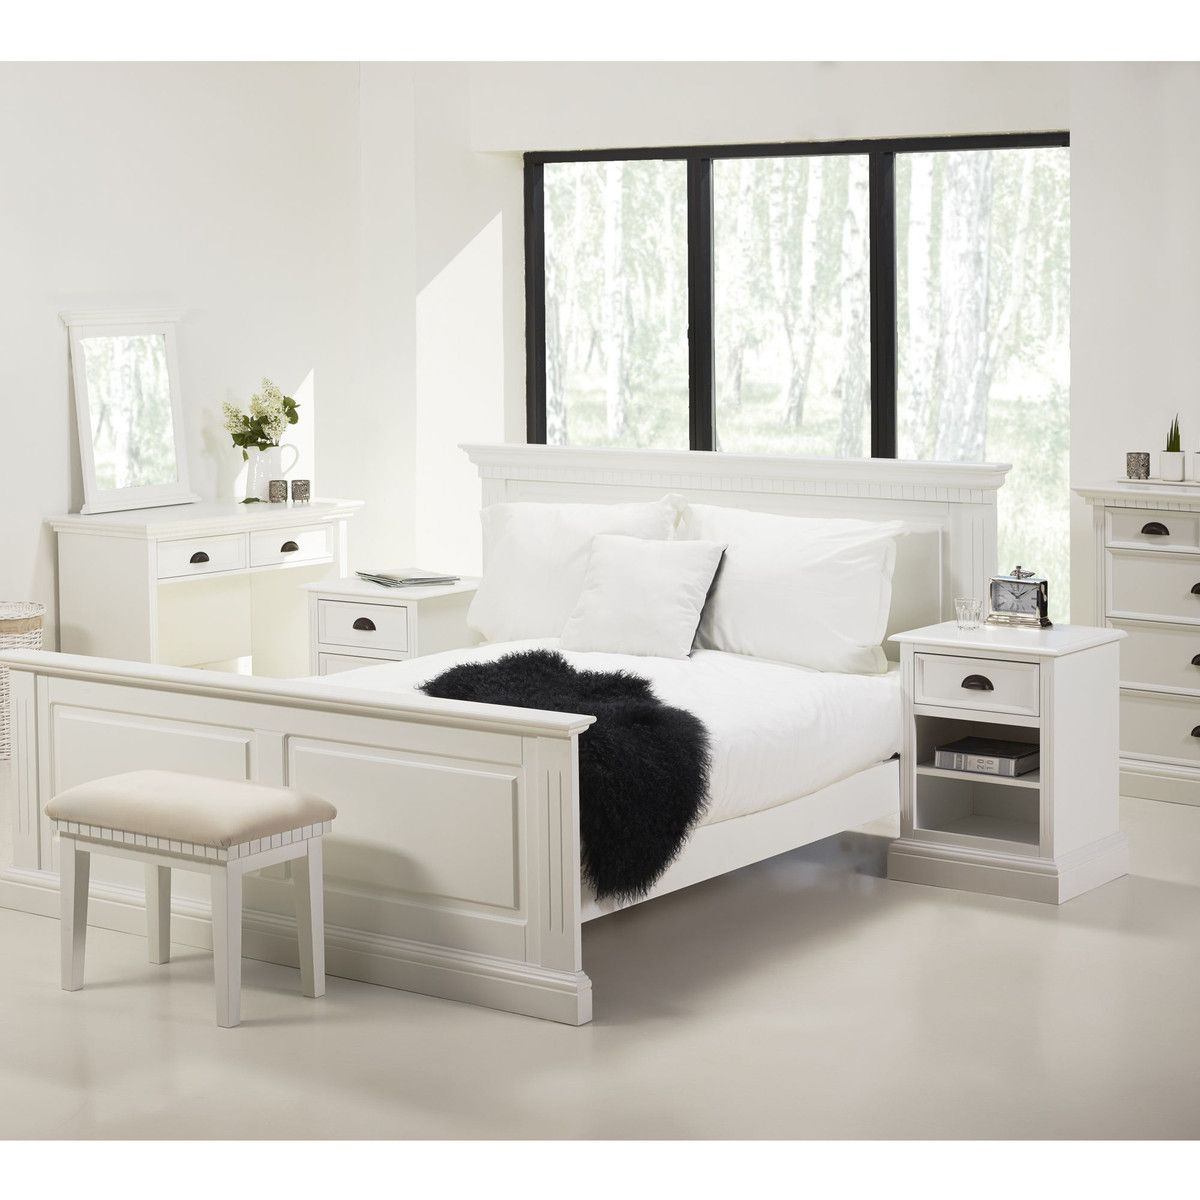 alinea romance night lit 160x200cm en pin blanc lit auchan pas cher ventes pas. Black Bedroom Furniture Sets. Home Design Ideas